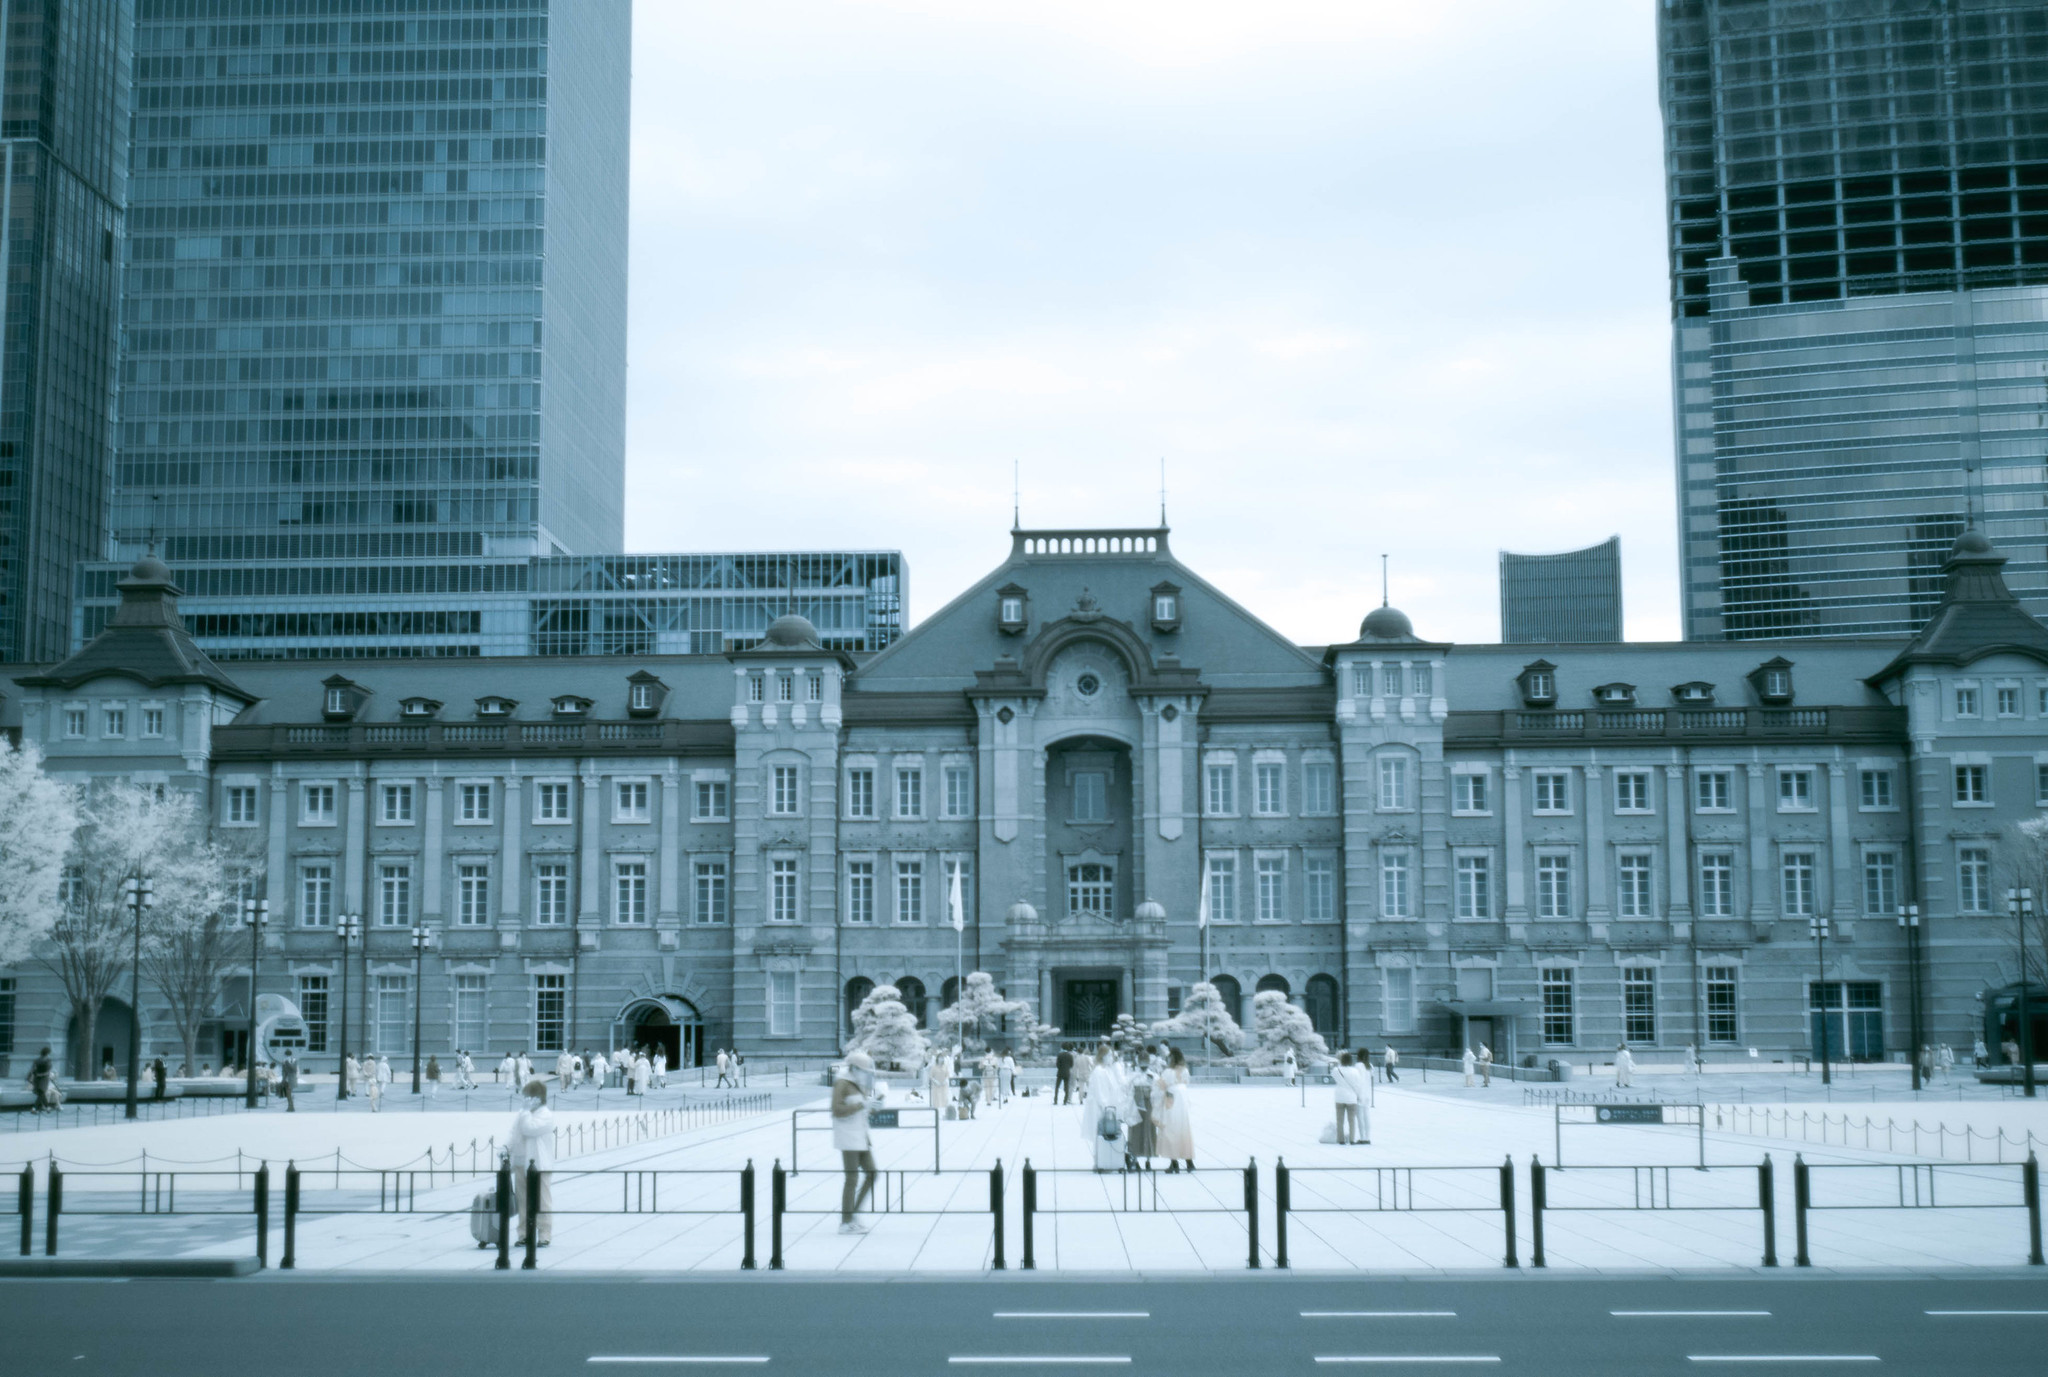 Tokyo Station(infrared photography)